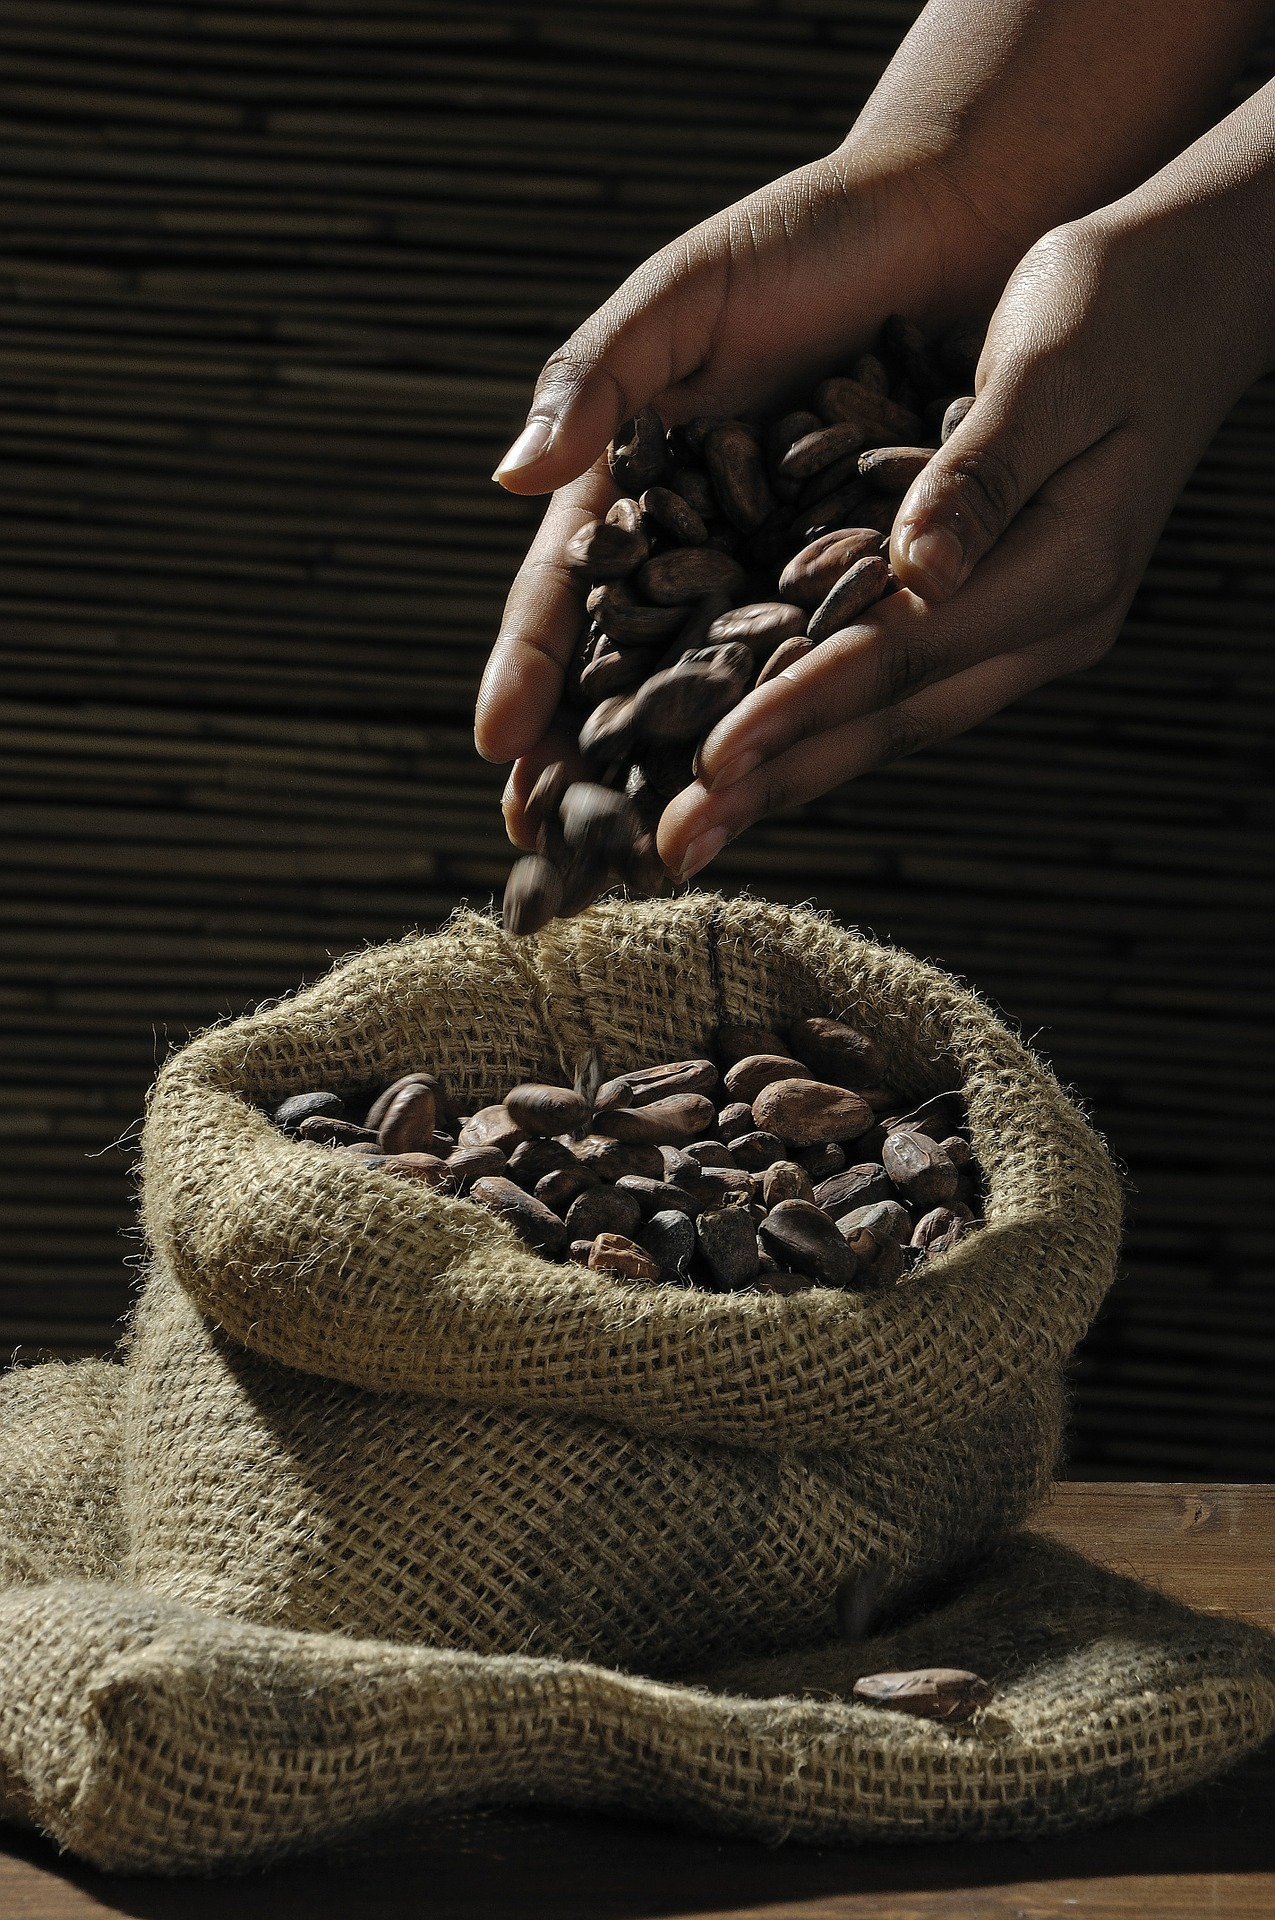 Cocoa Beans: Where It All Starts